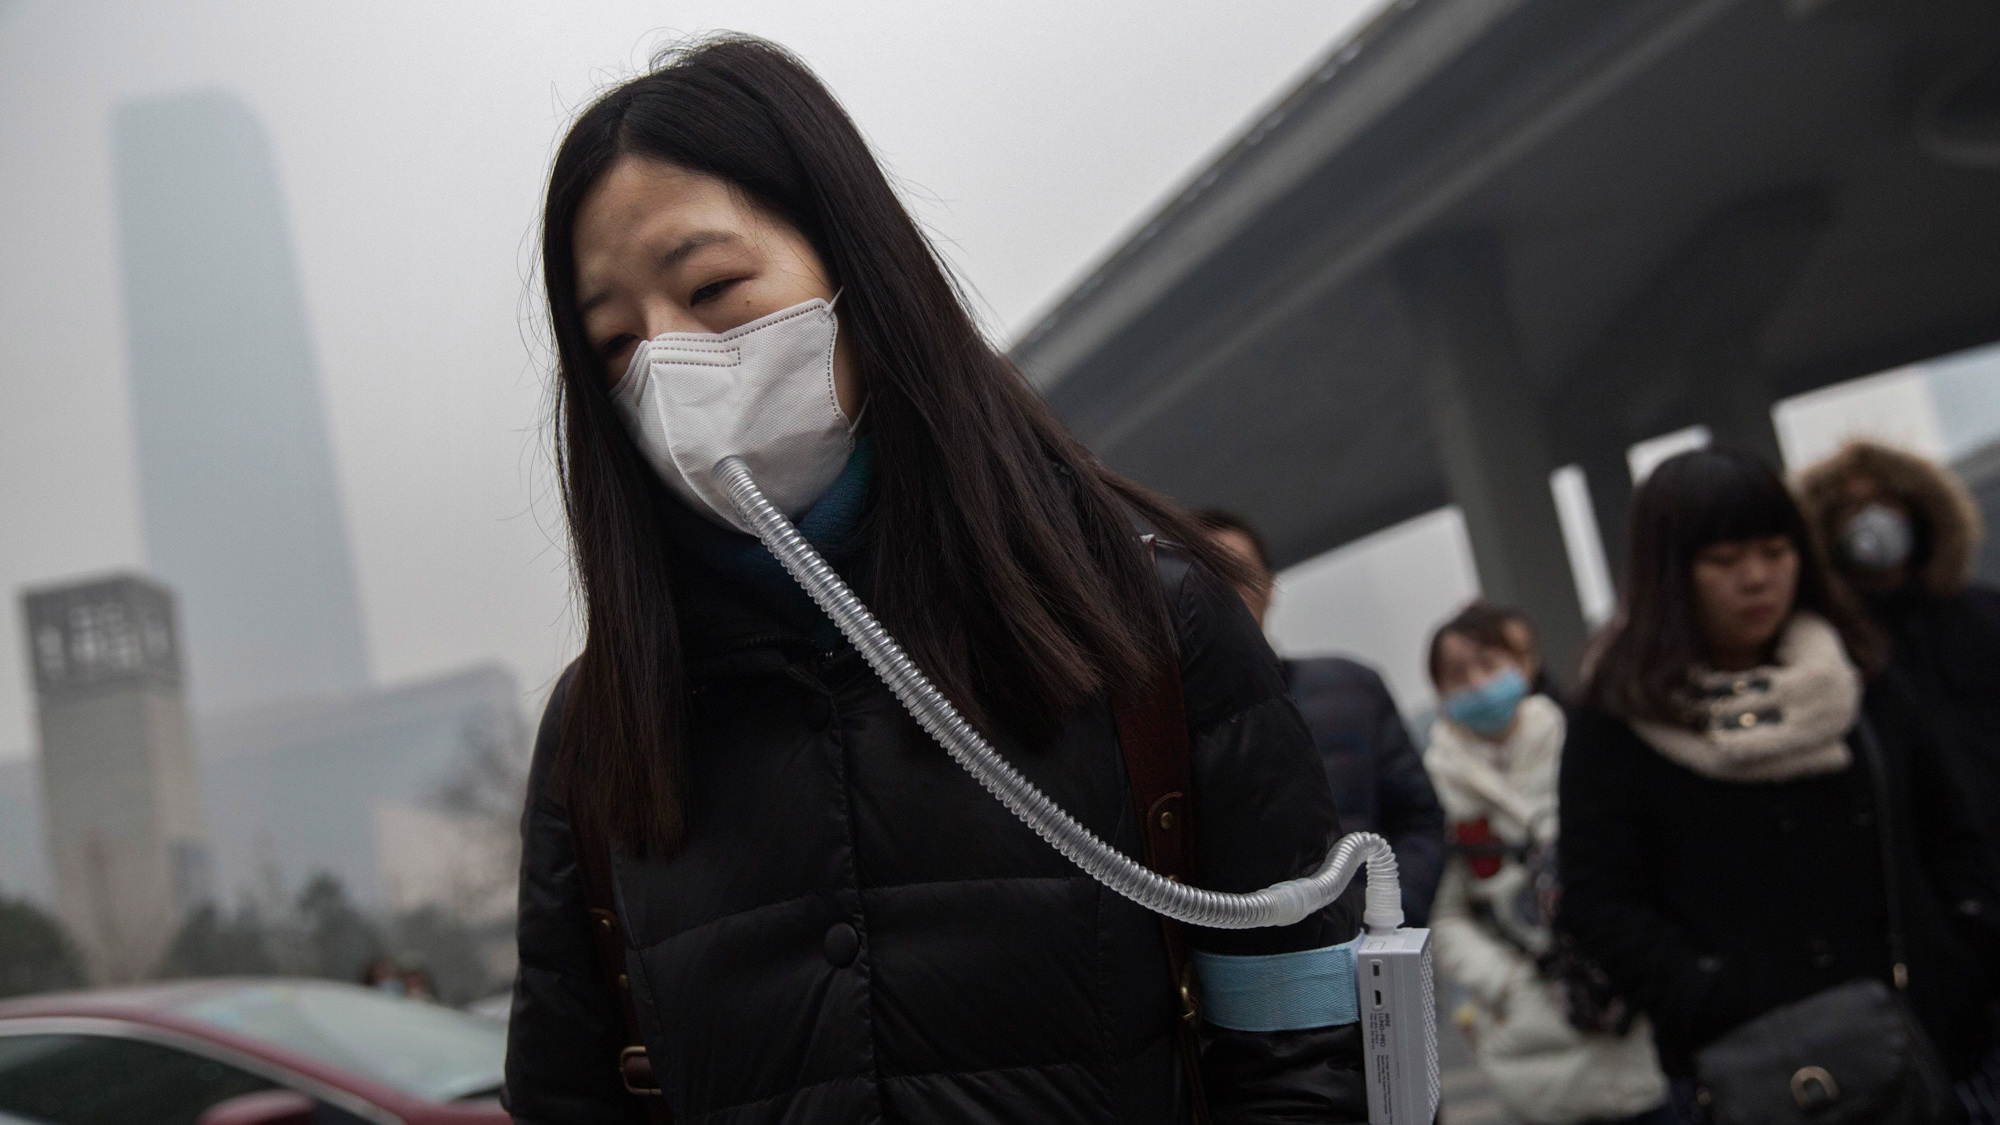 npr.org - Report: Pollution Kills 3 Times More than AIDS, TB And Malaria Combined